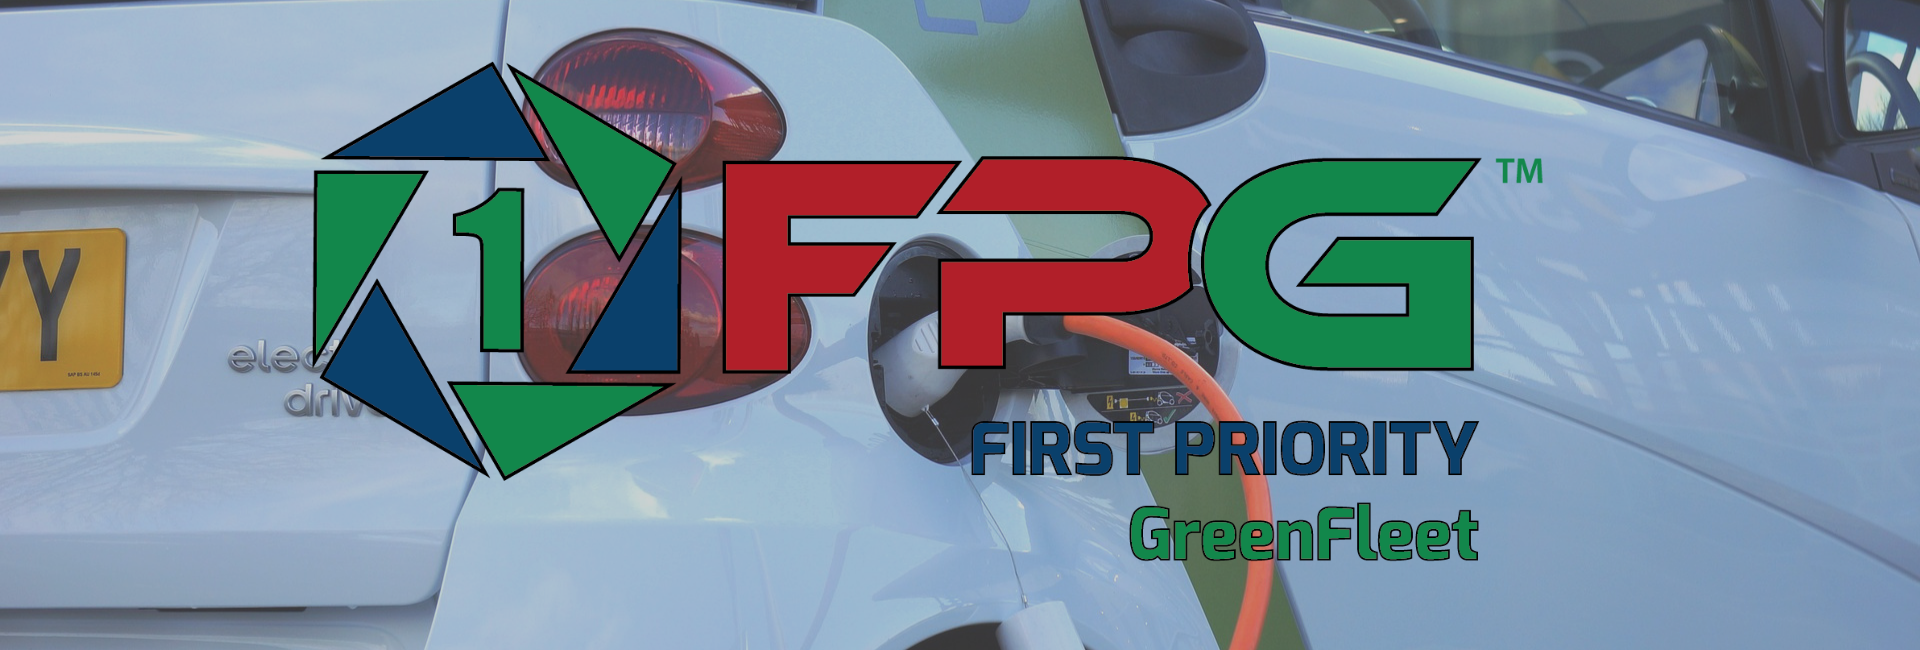 First Priority Greenfleet Electric Service Electrification